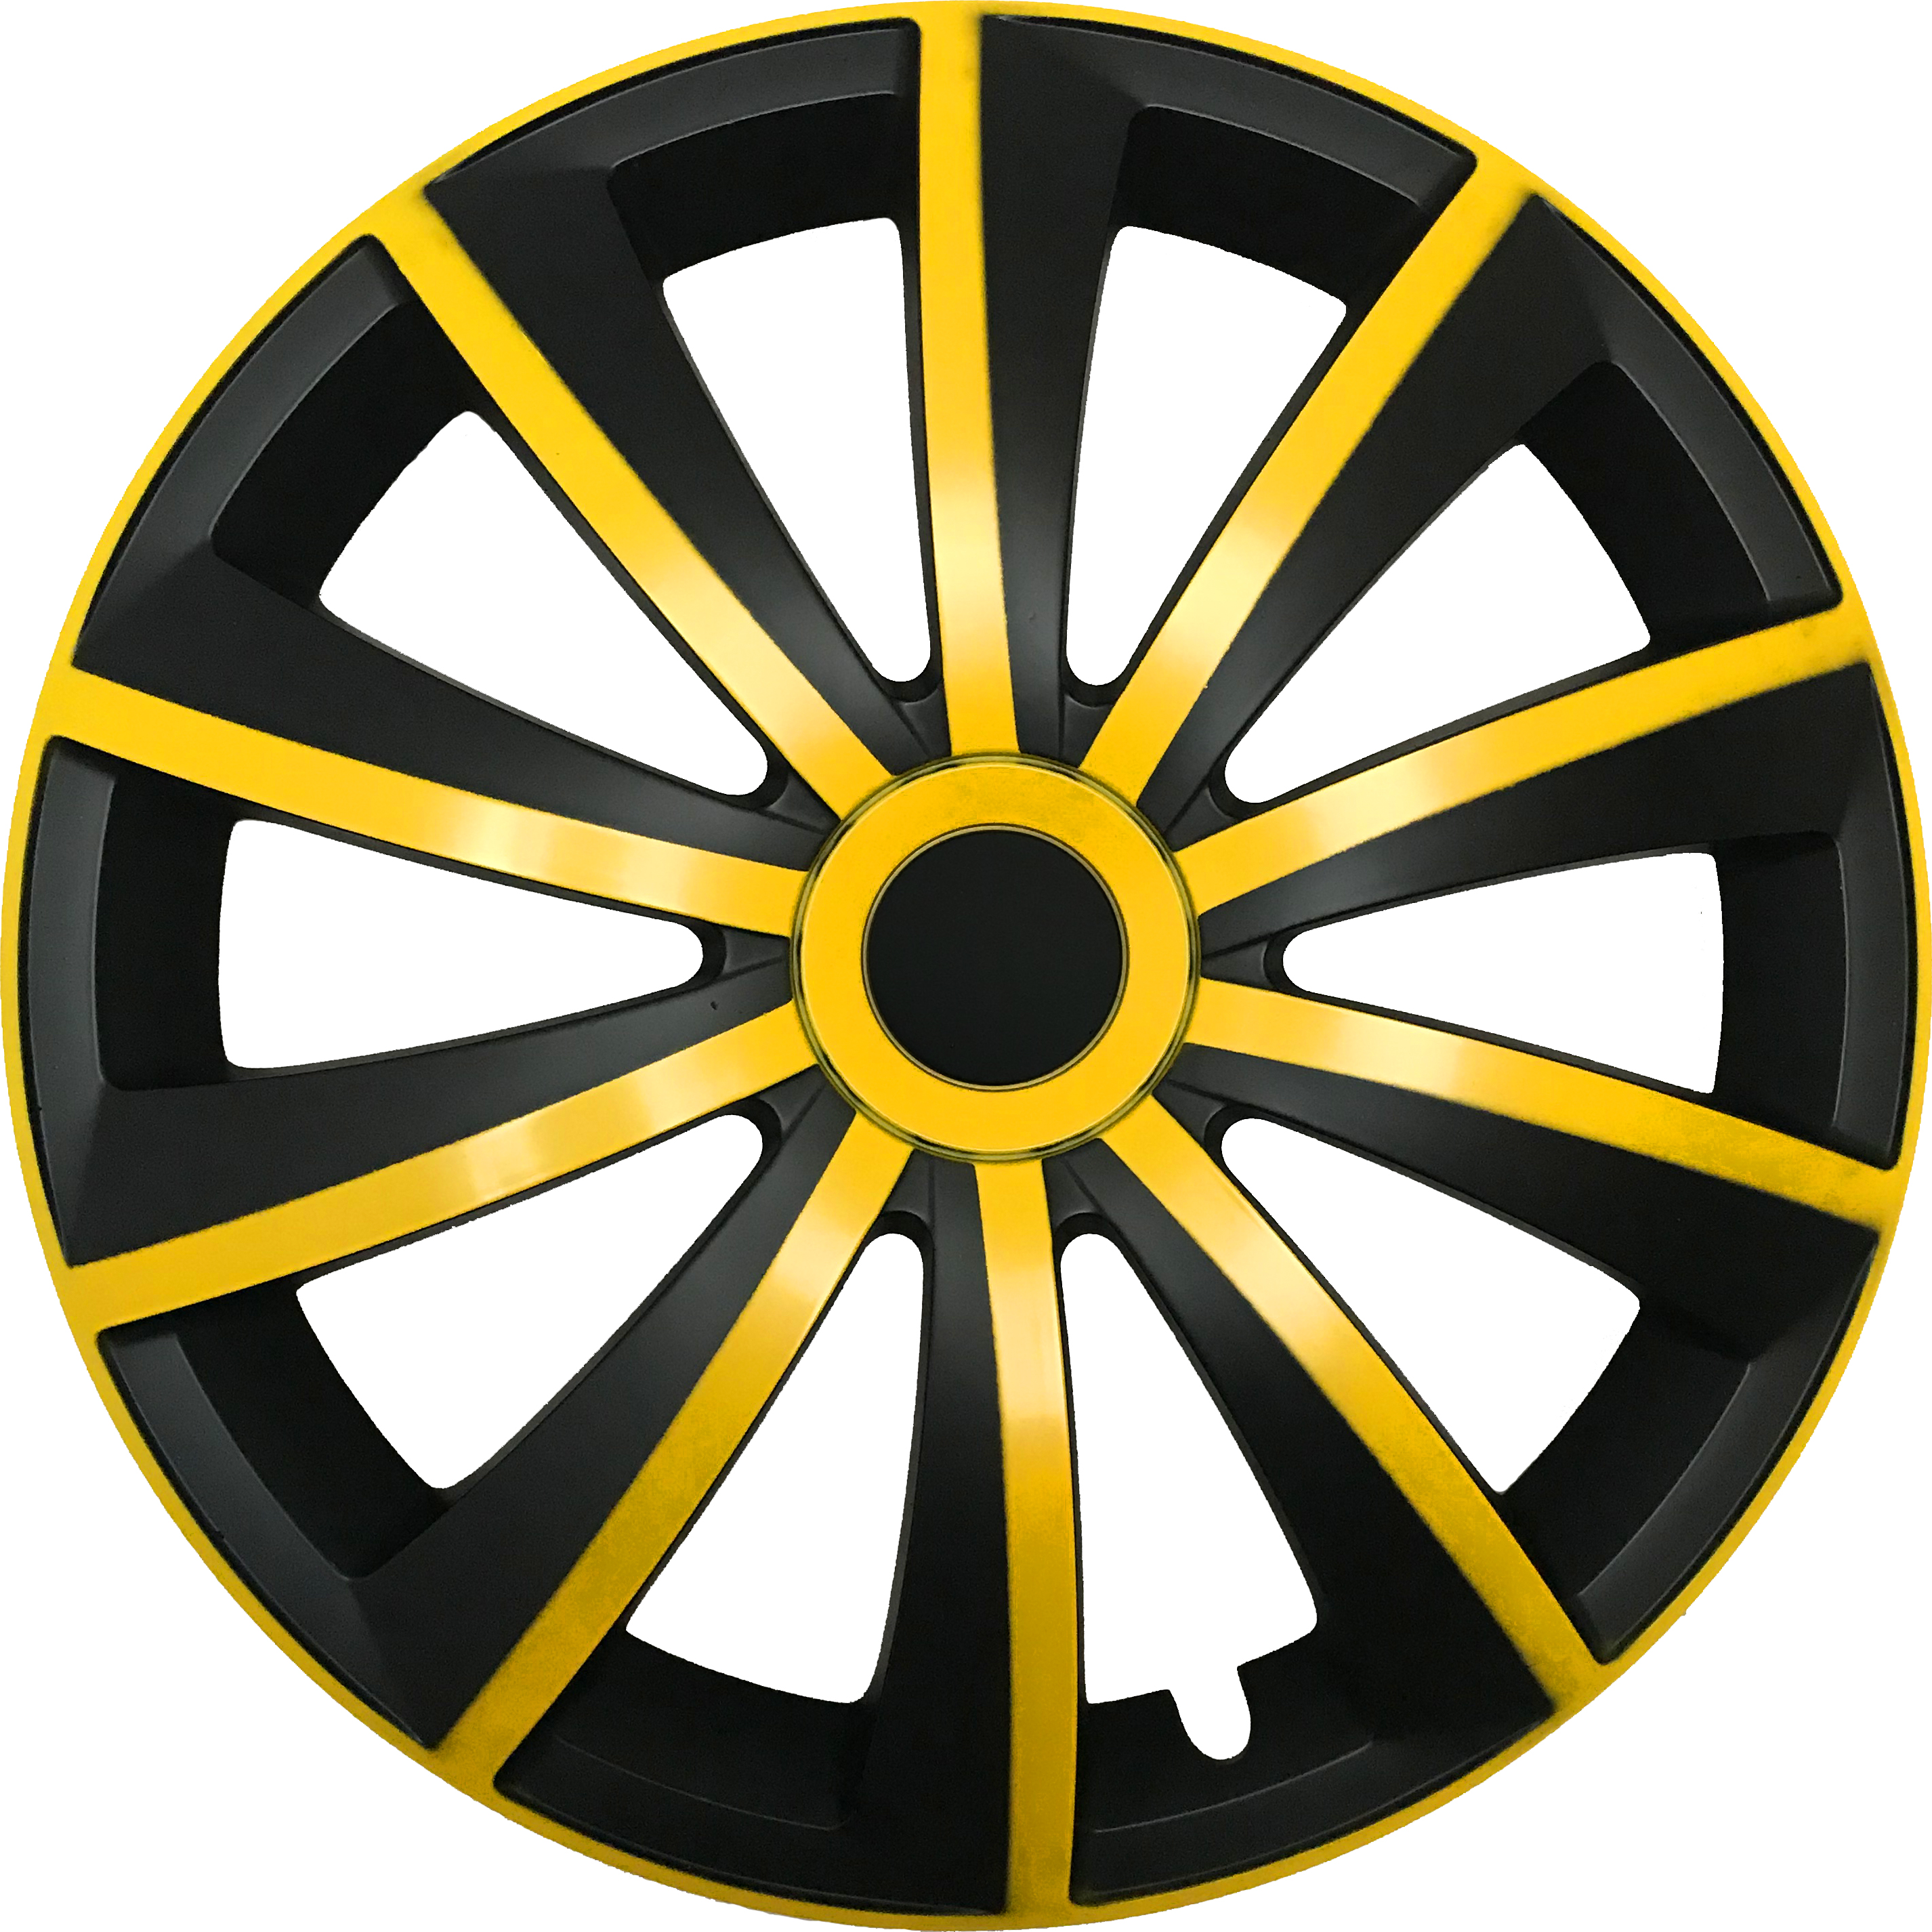 GRAL yellow/black - Auto-Radkappen